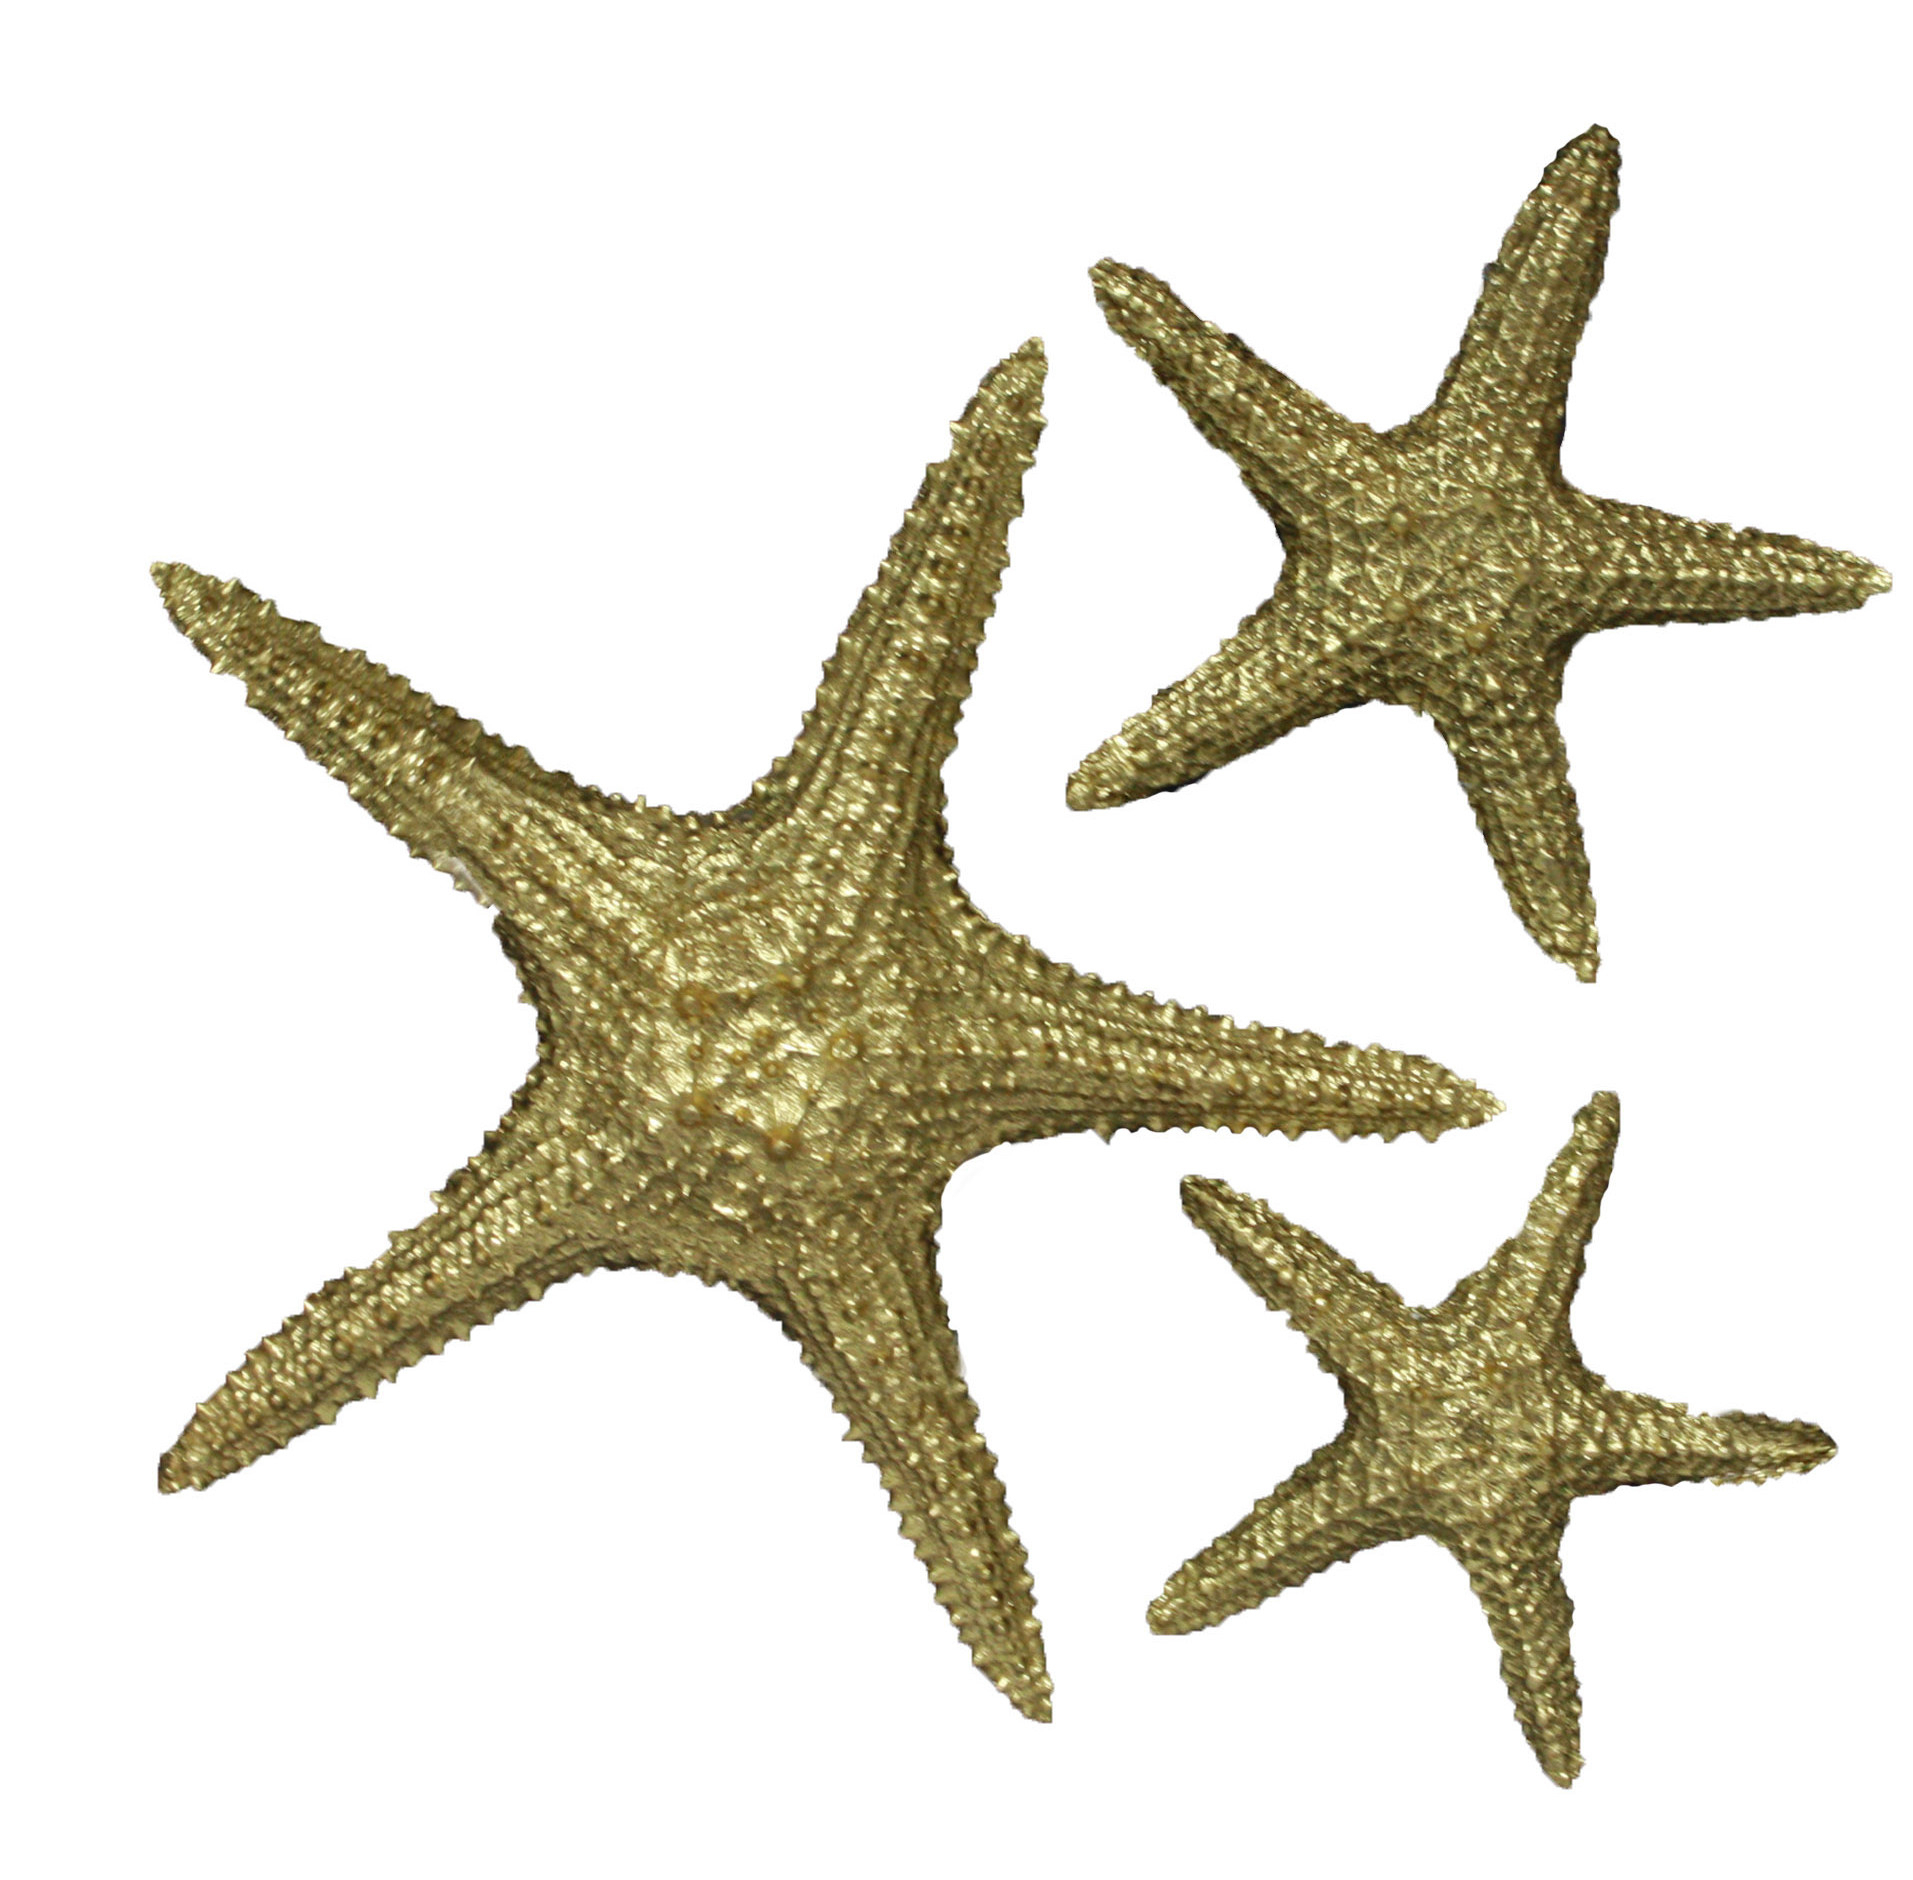 Ebay Within Most Popular Yelton 3 Piece Starfish Wall Decor Sets (Gallery 5 of 20)